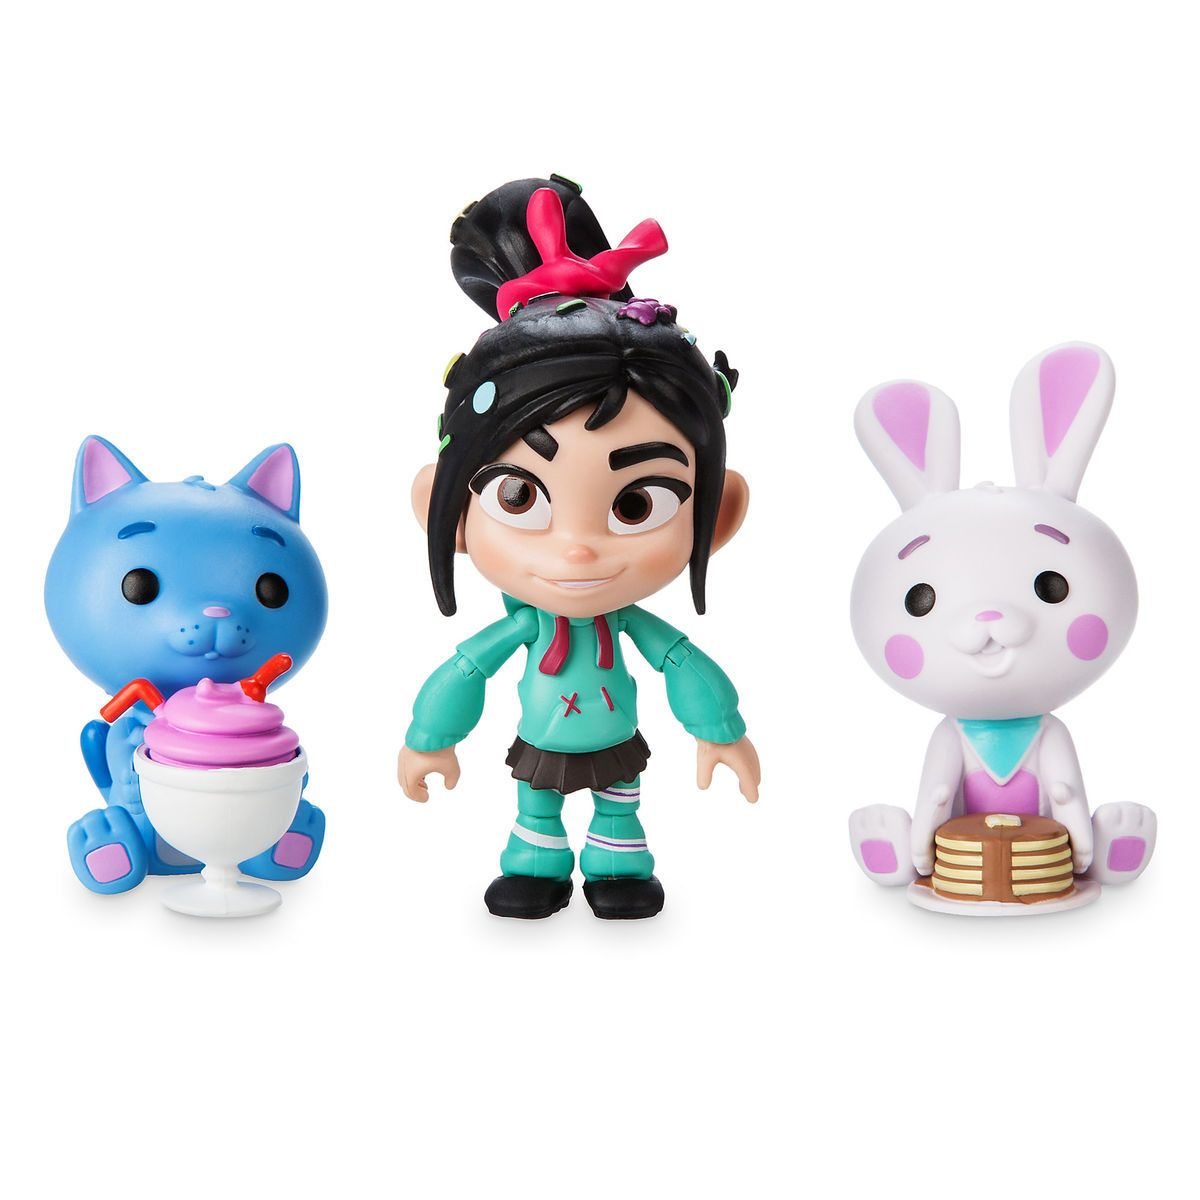 Product Image Of Vanellope Action Figure Set Ralph Breaks The